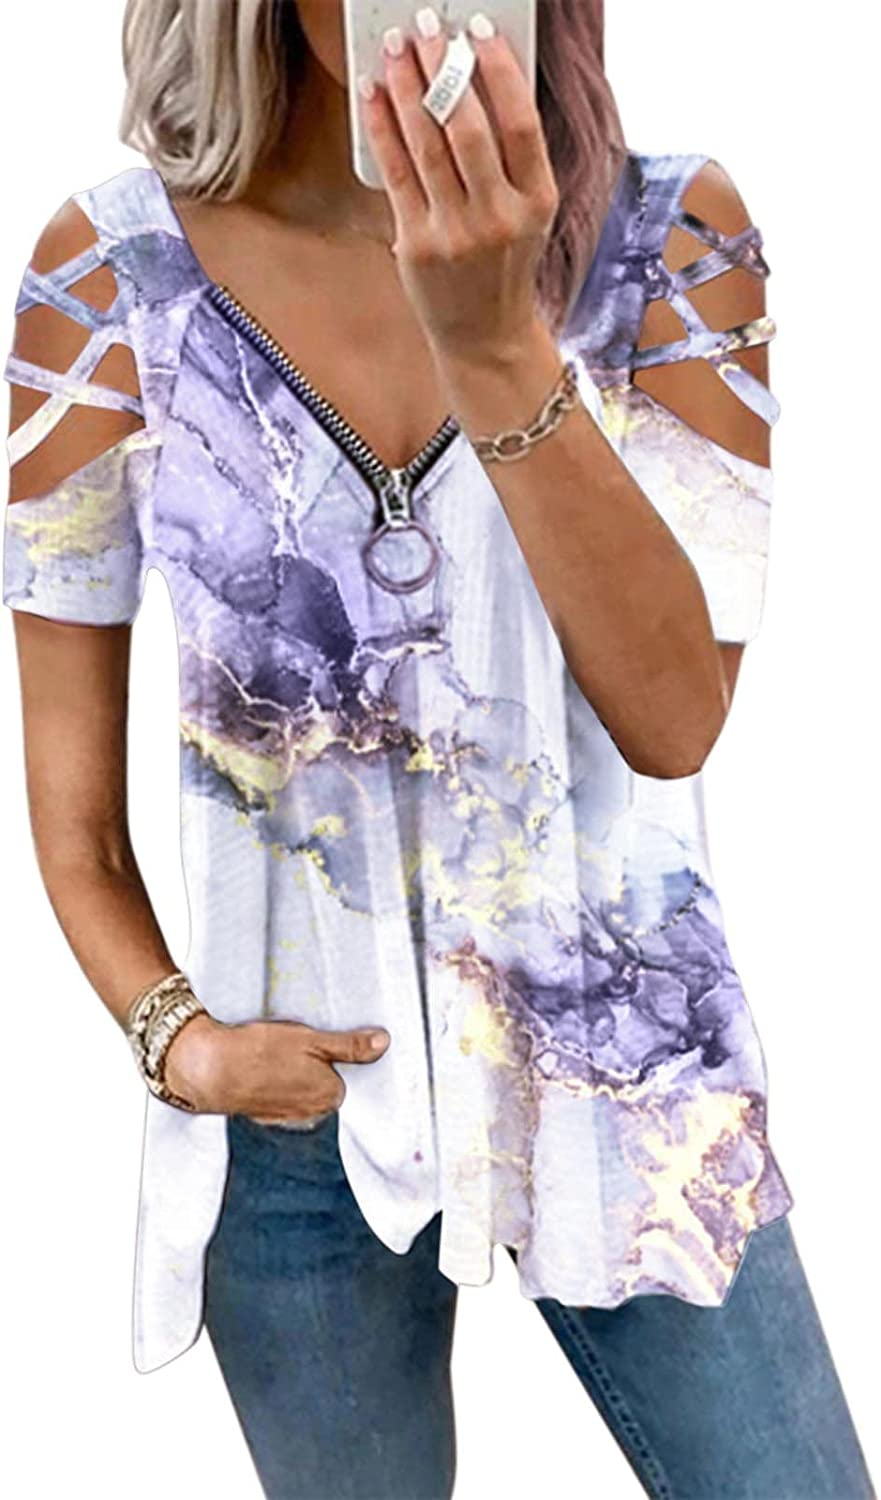 JSPOYOU Womens Summer Top,Fashion Short Sleeve Strapless Casual Tunic Tops,Daily Loose Fit T-Shirt Zipper V-Neck Blouses